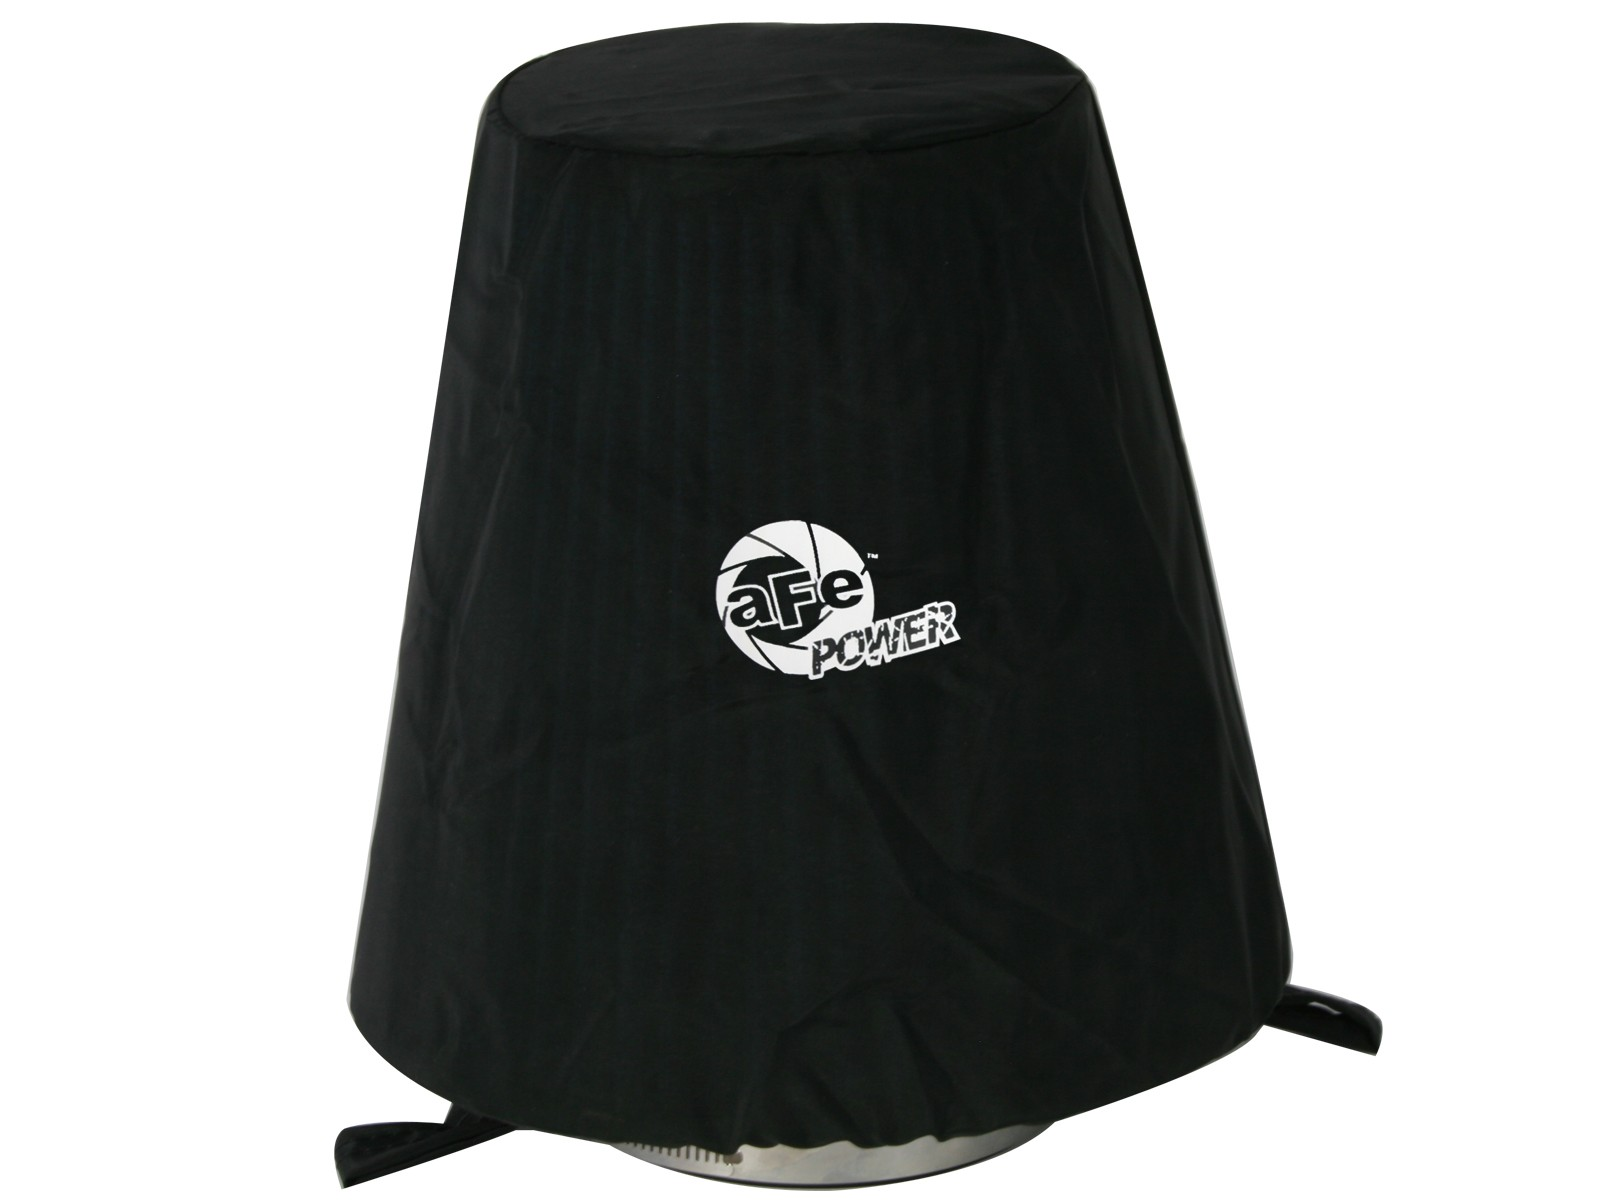 aFe POWER 28-10203 Magnum SHIELD Pre-Filters